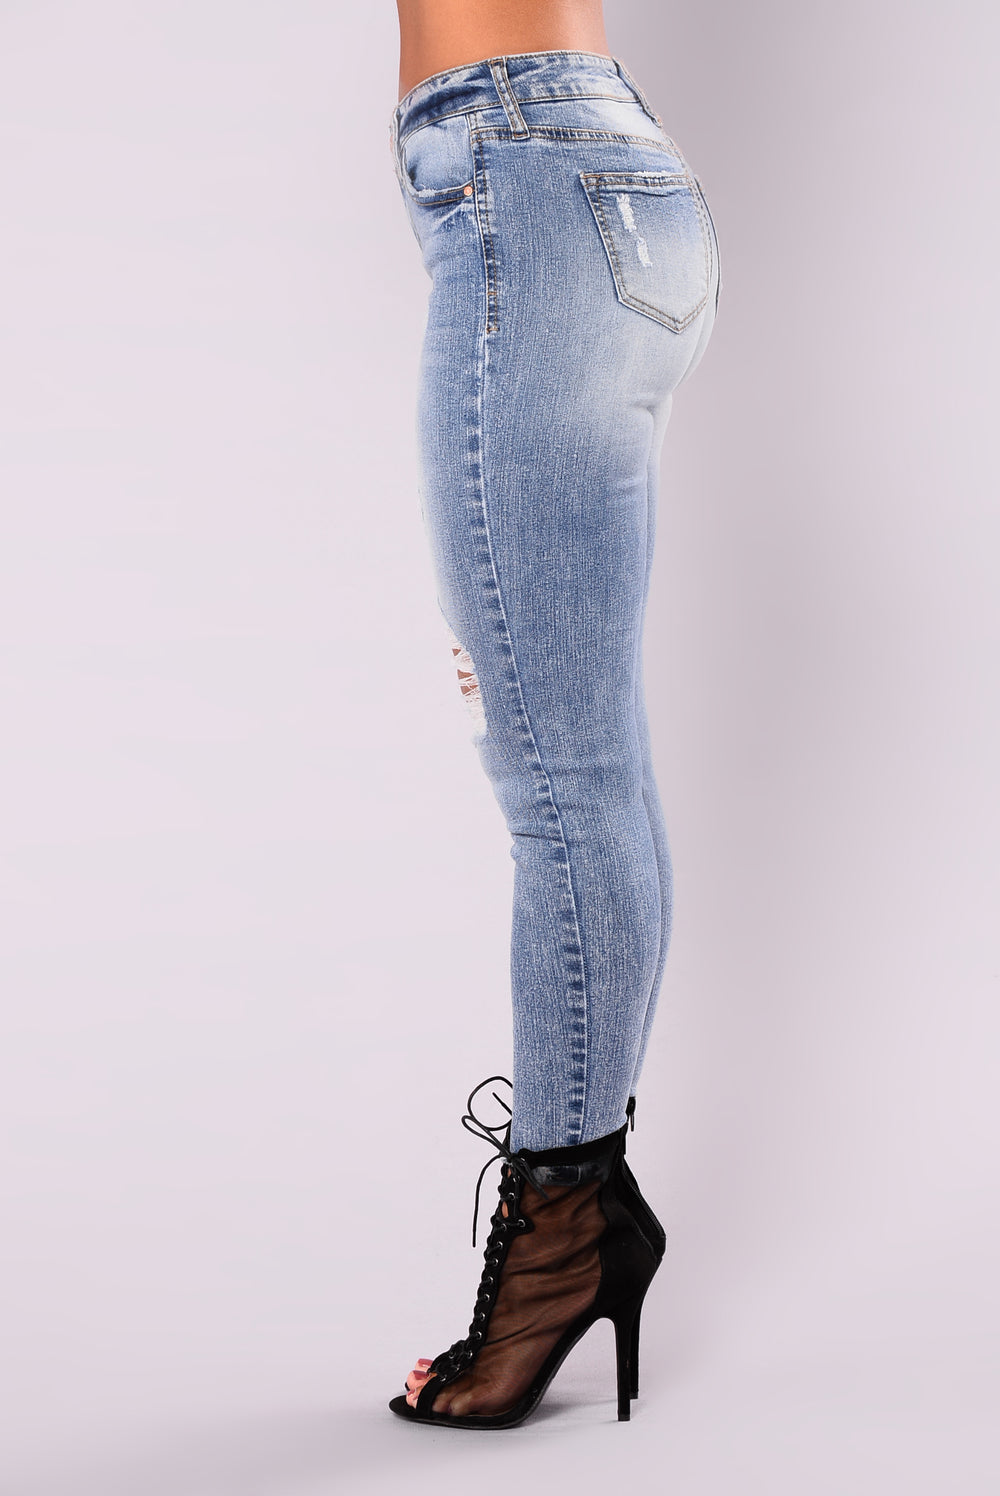 Guilty Pleasure Ankle Jeans - Light Blue Wash